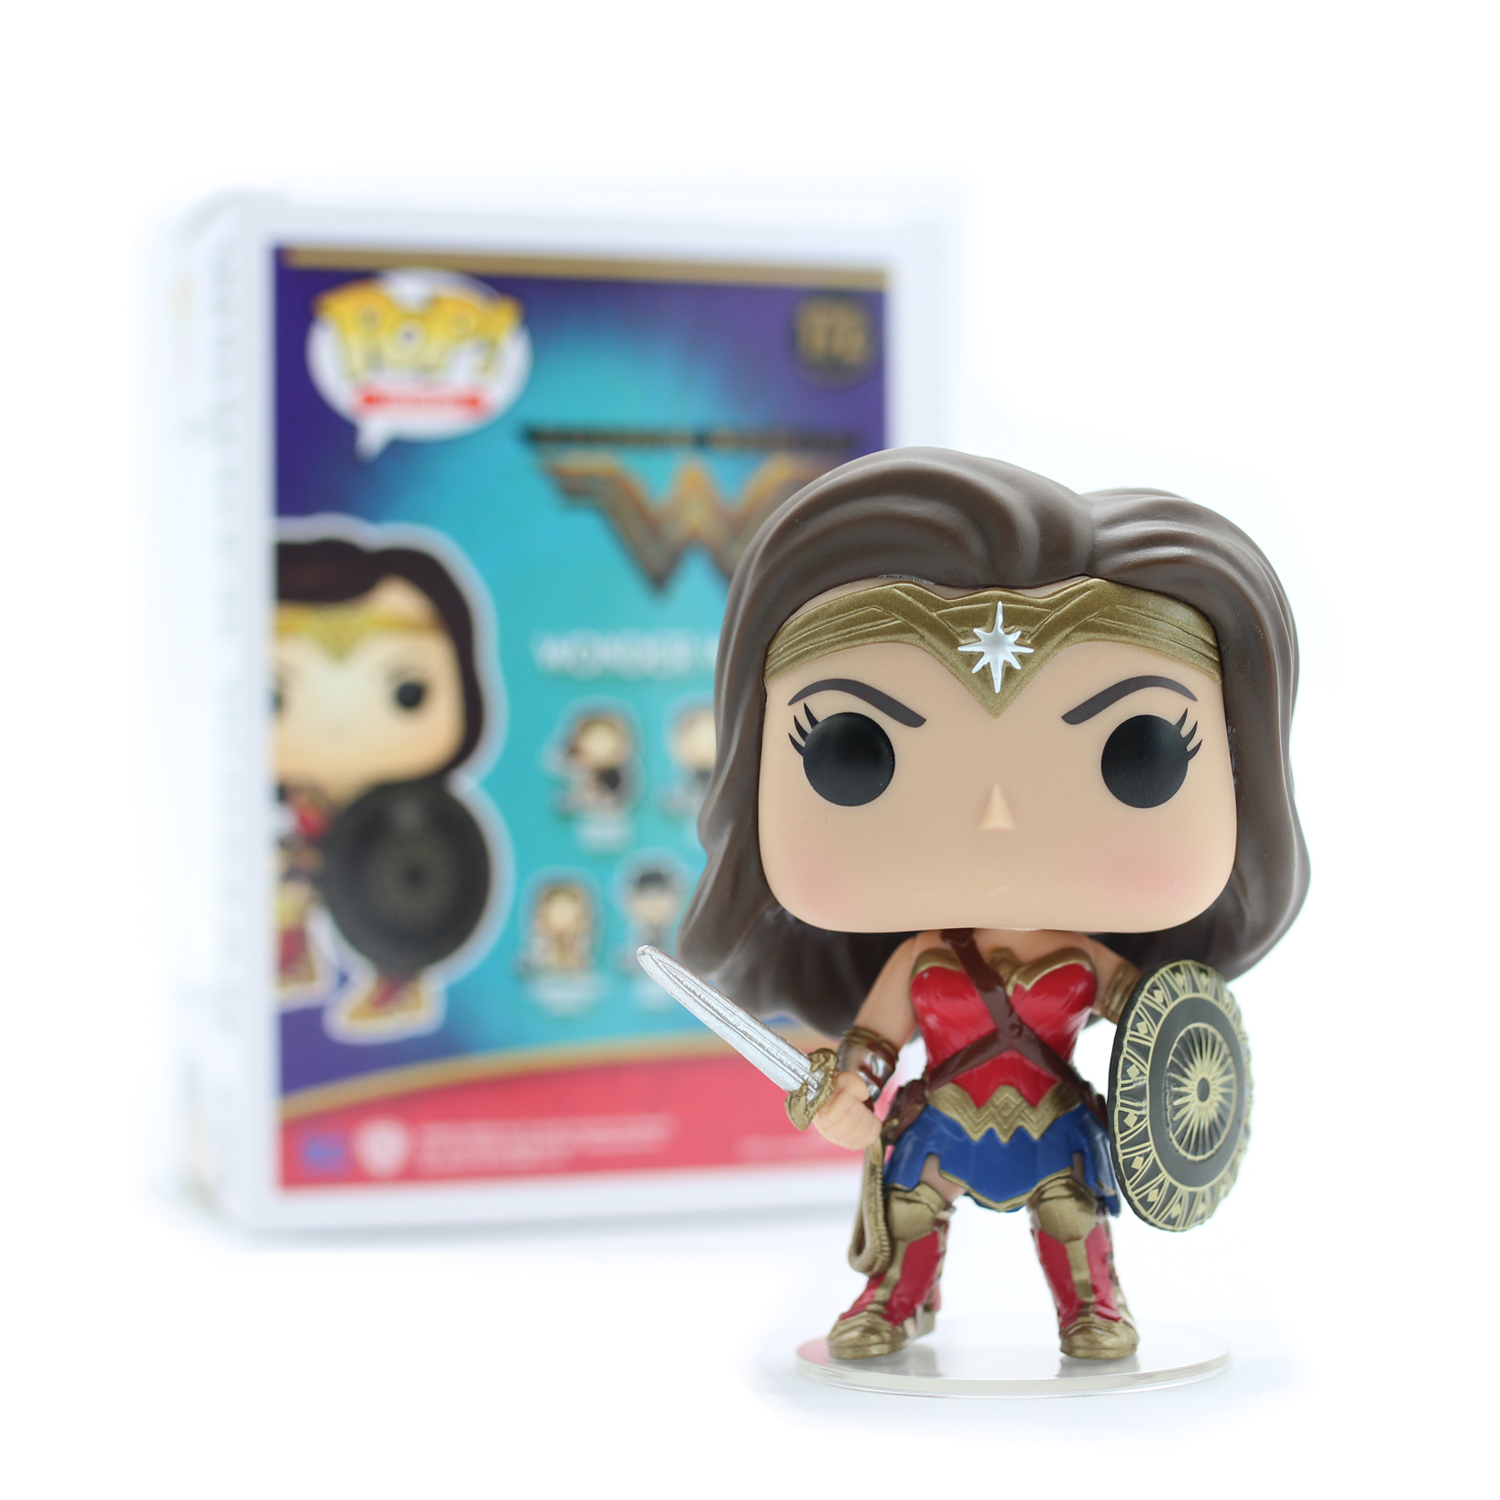 Chanycore Funko pop DC Wonder Woman 172# Steve Trevor Anime Vinyl PVC Action figure Model Toy  funko pop wonder woman pvc action figure collectible model toy 10cm wonderwoman